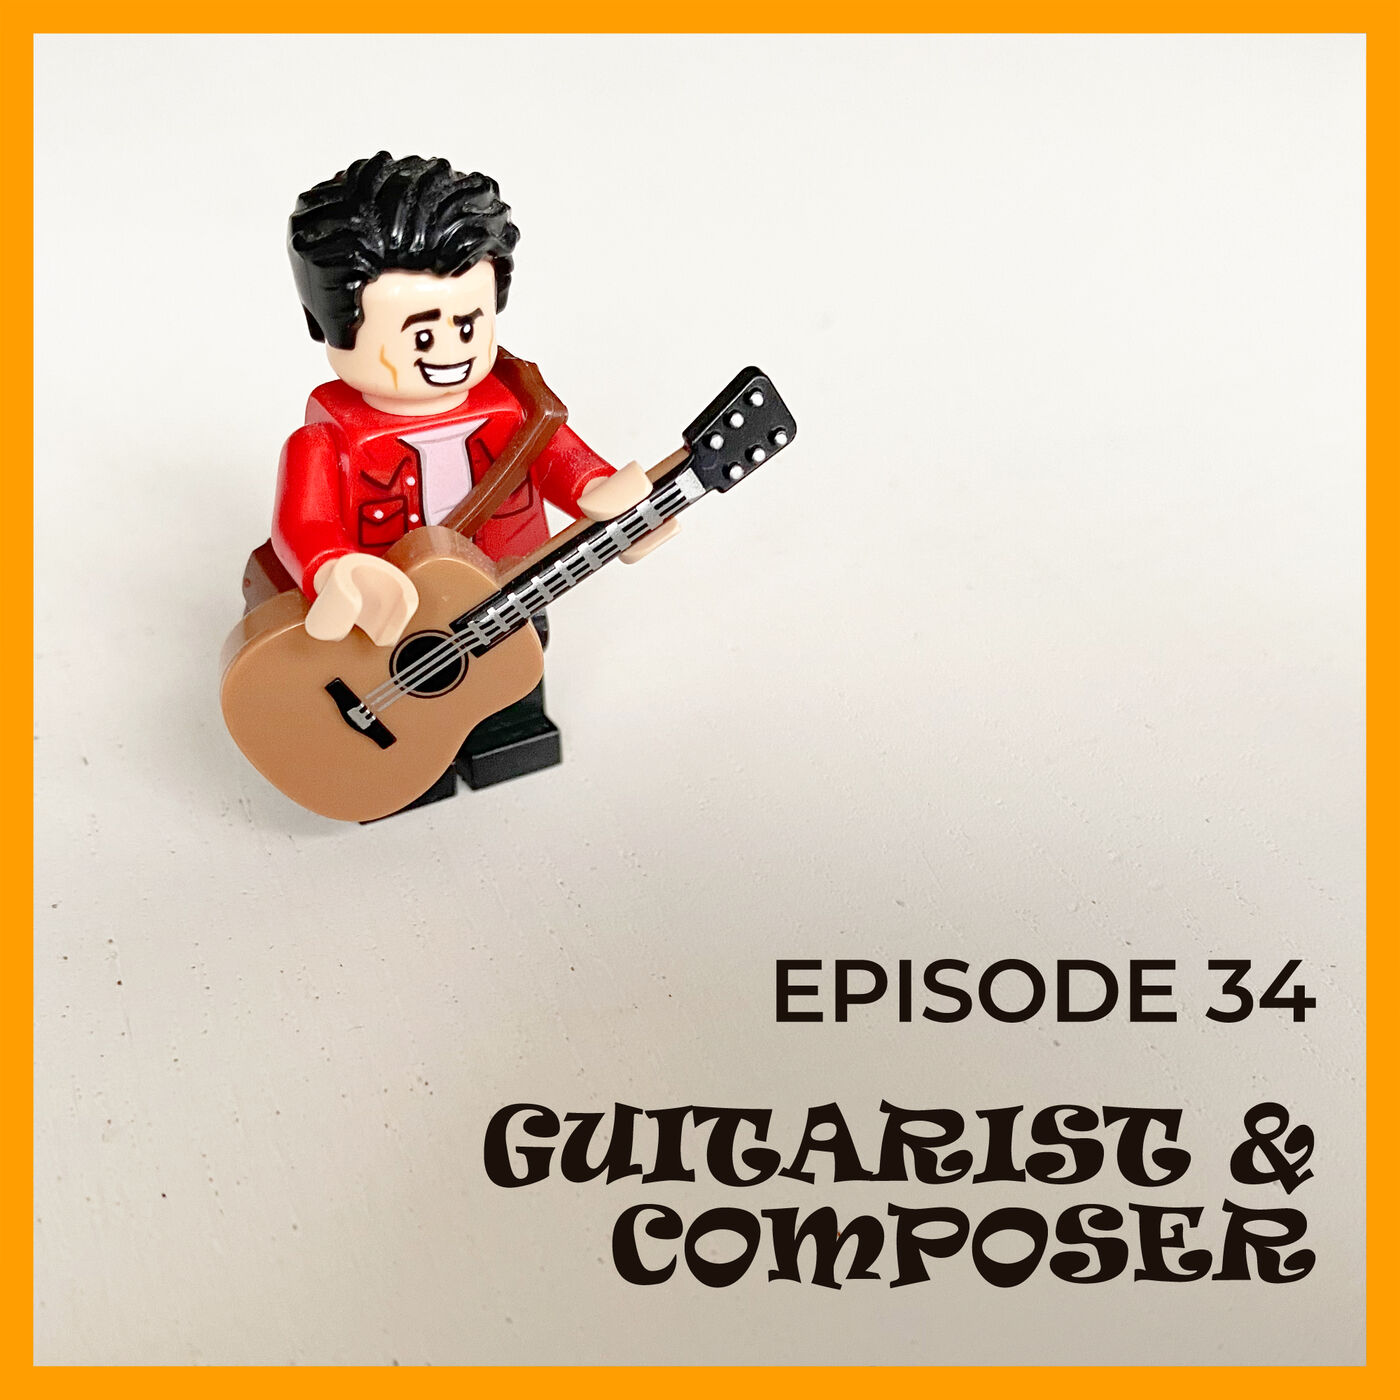 The Guitarist and Composer